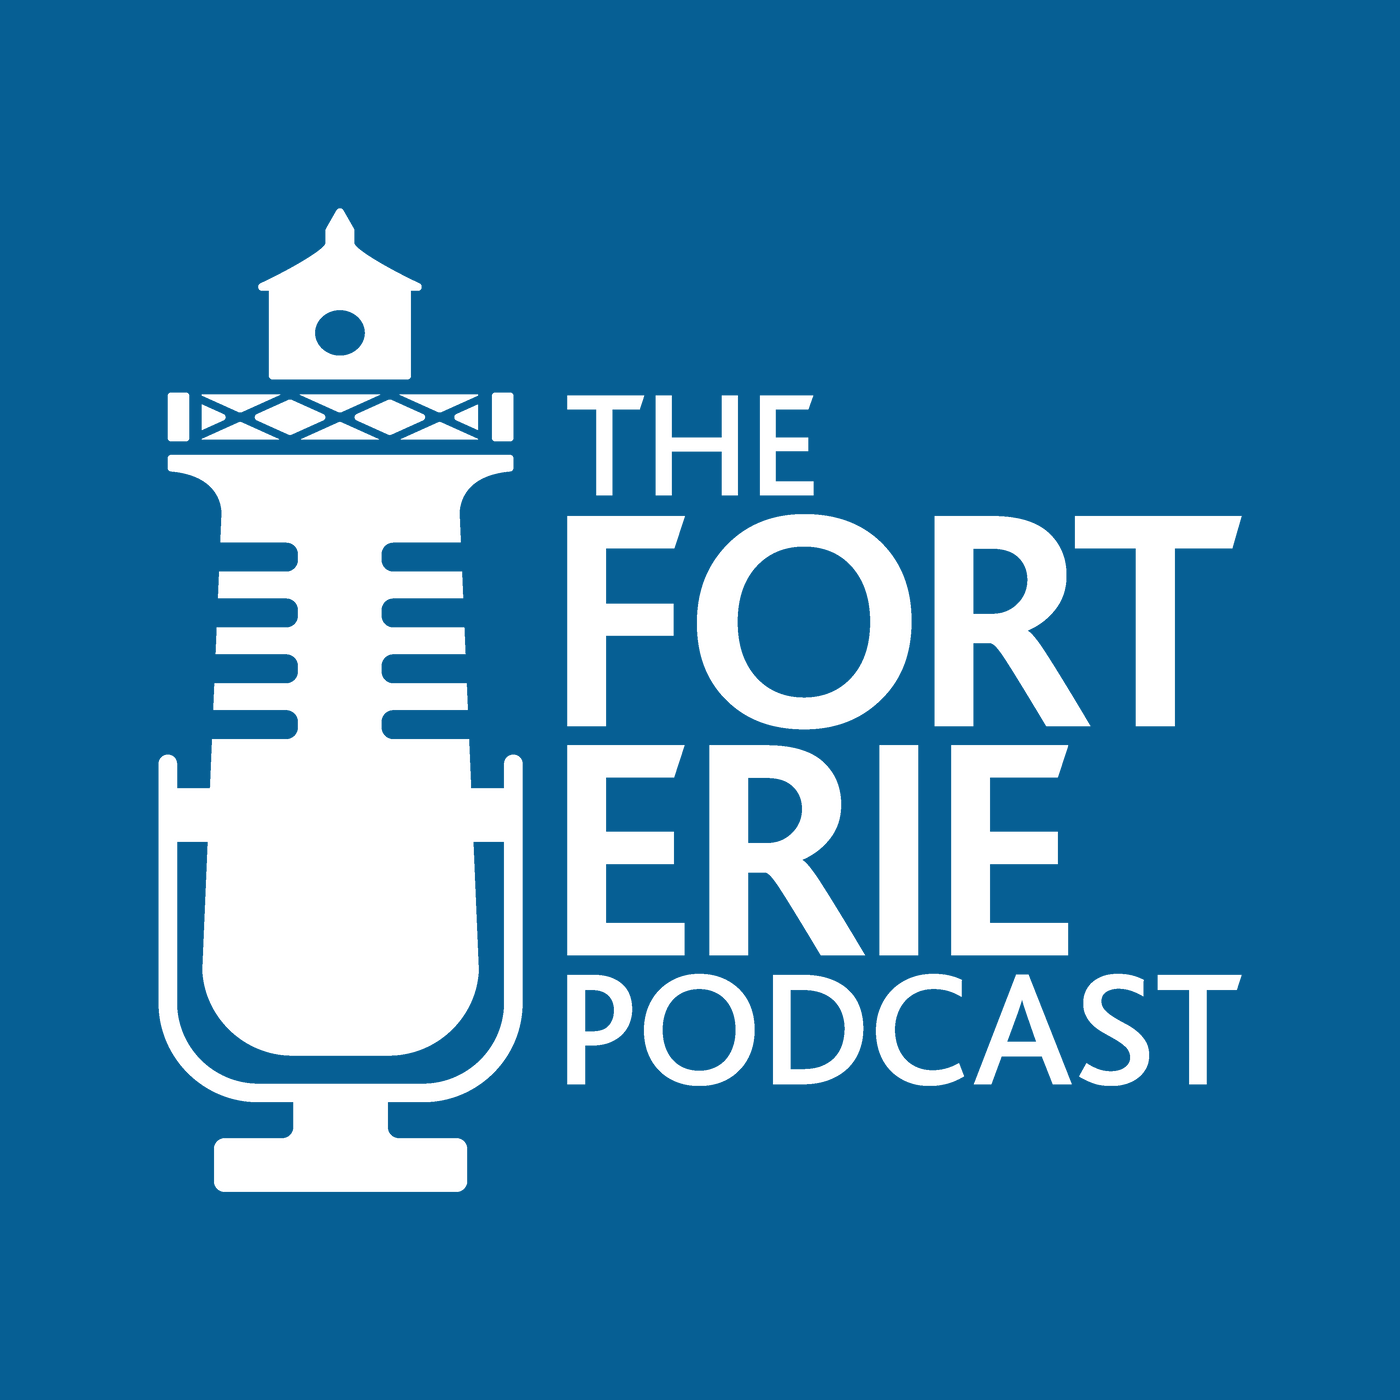 The Fort Erie Podcast show art